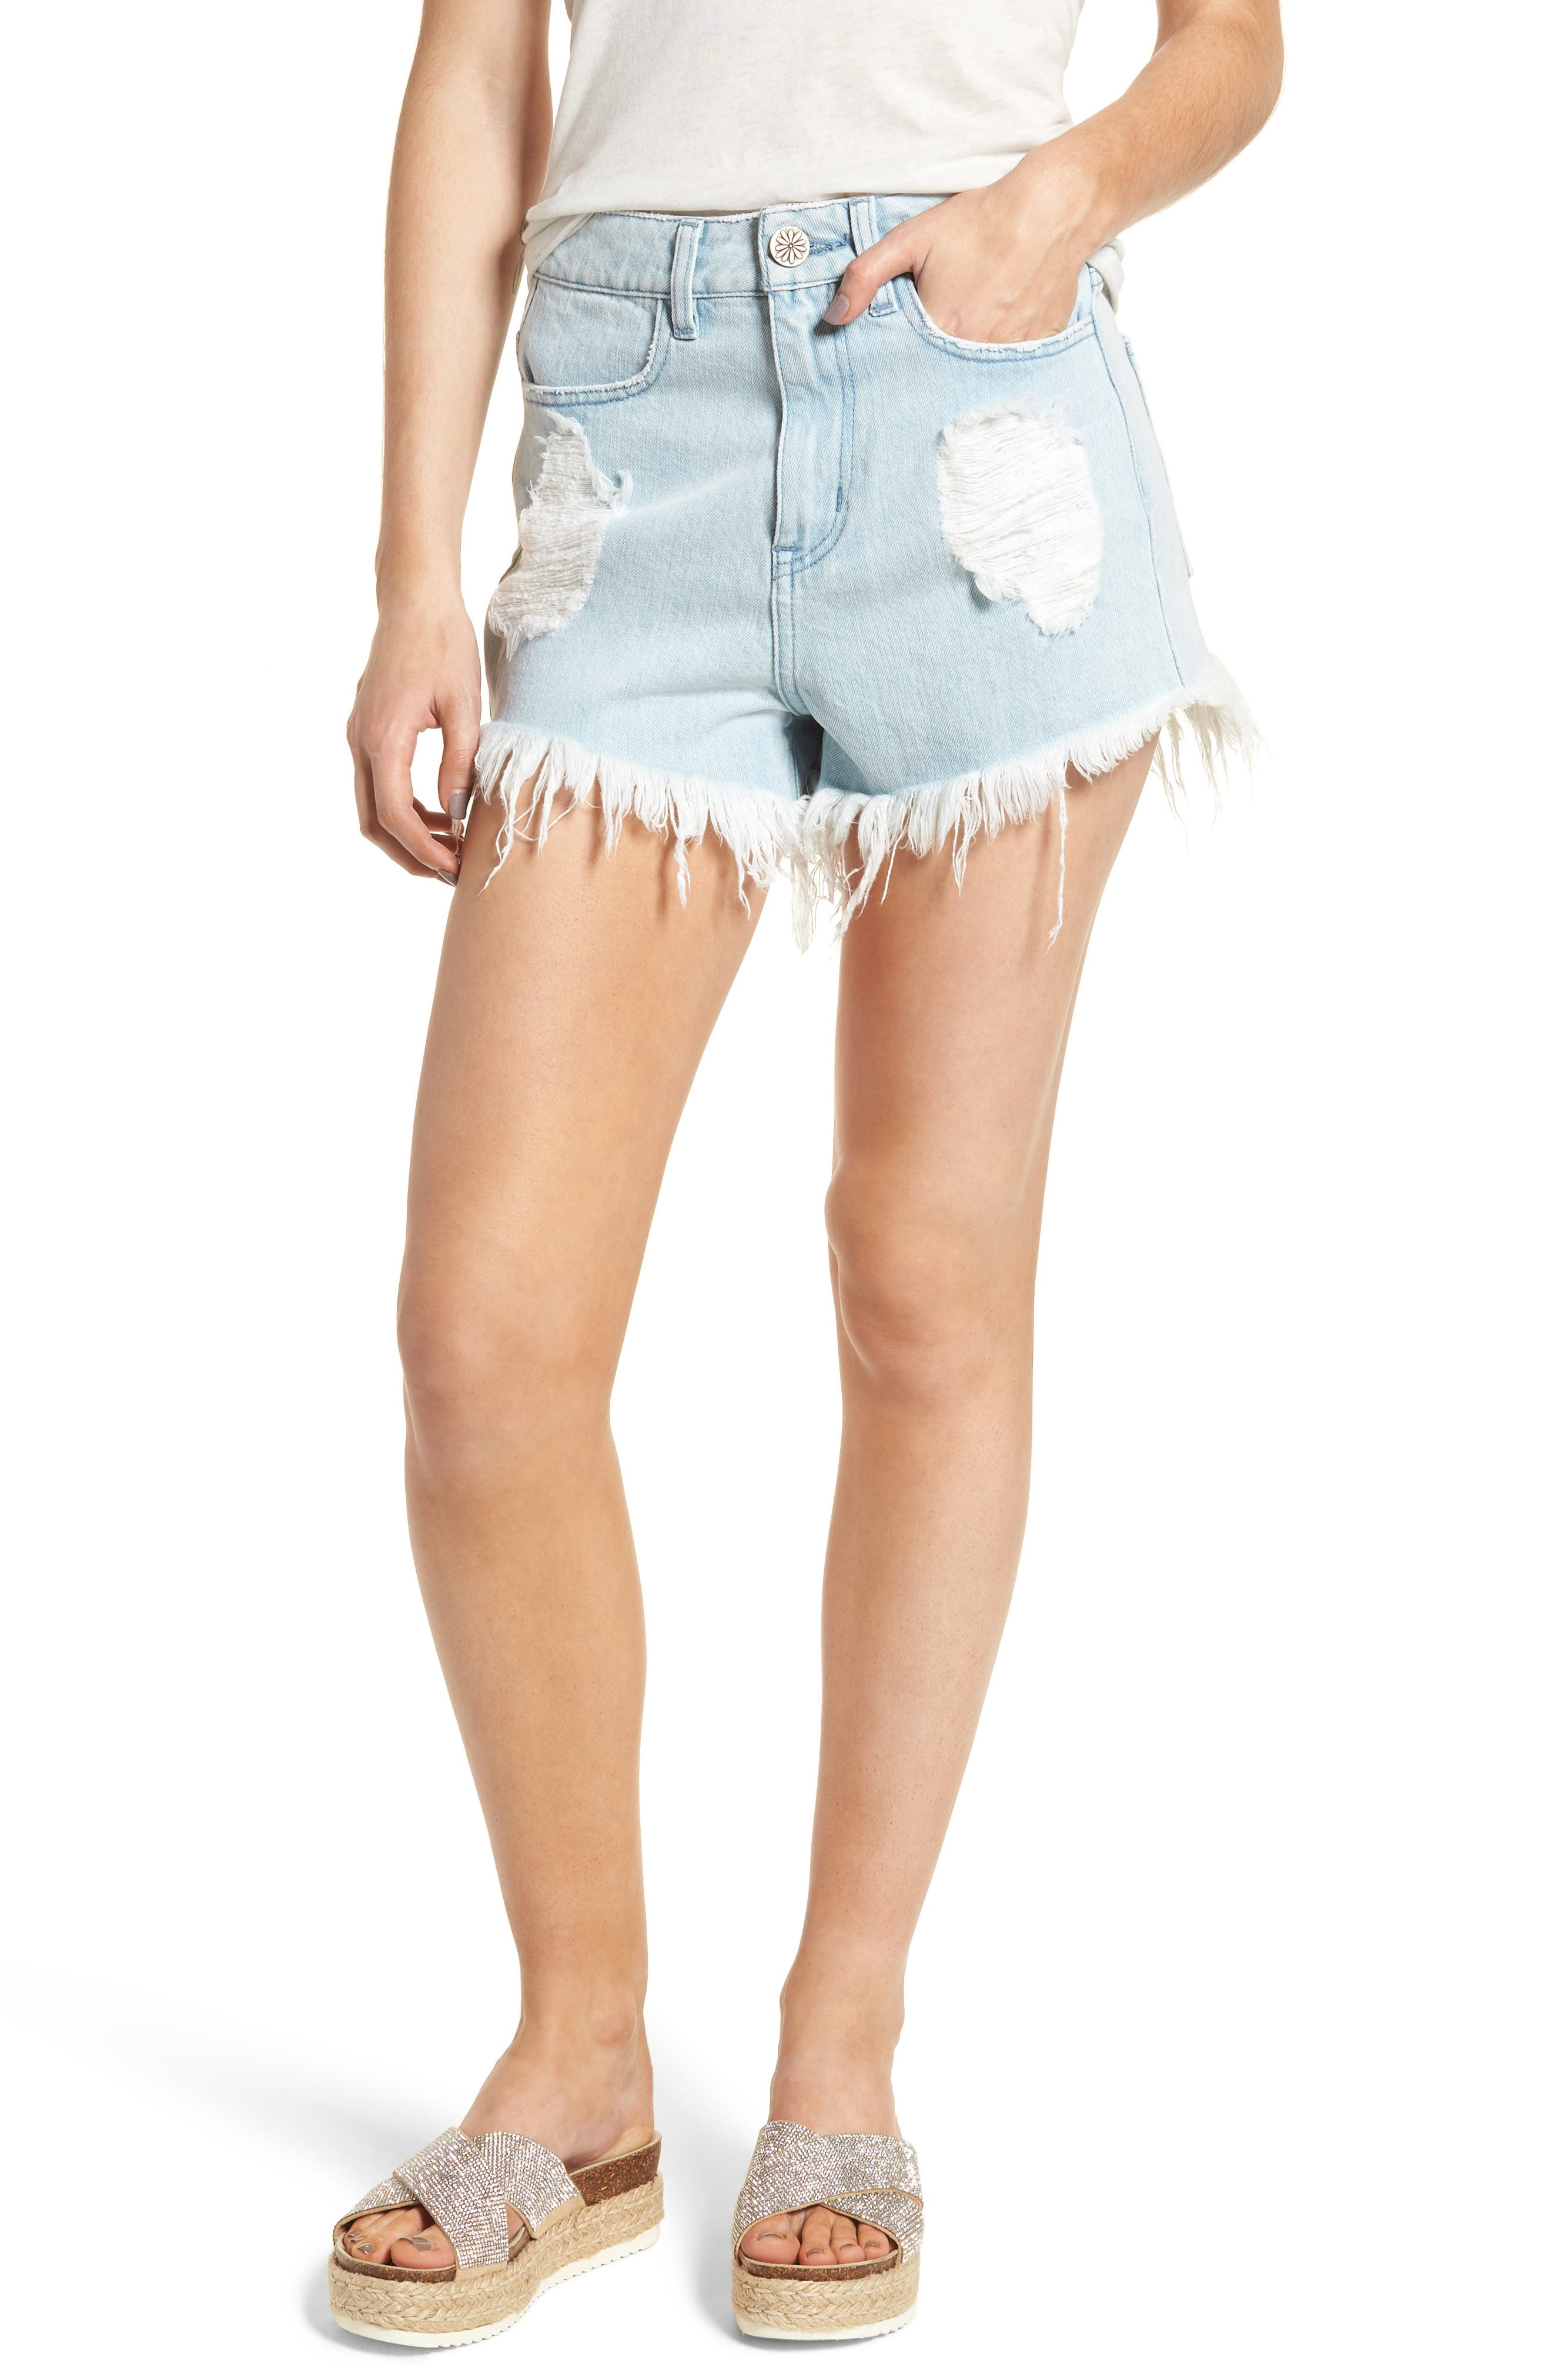 Wyoming High Waist Cutoff Denim Shorts,                             Main thumbnail 1, color,                             WHITEWATER WITH CACTUS